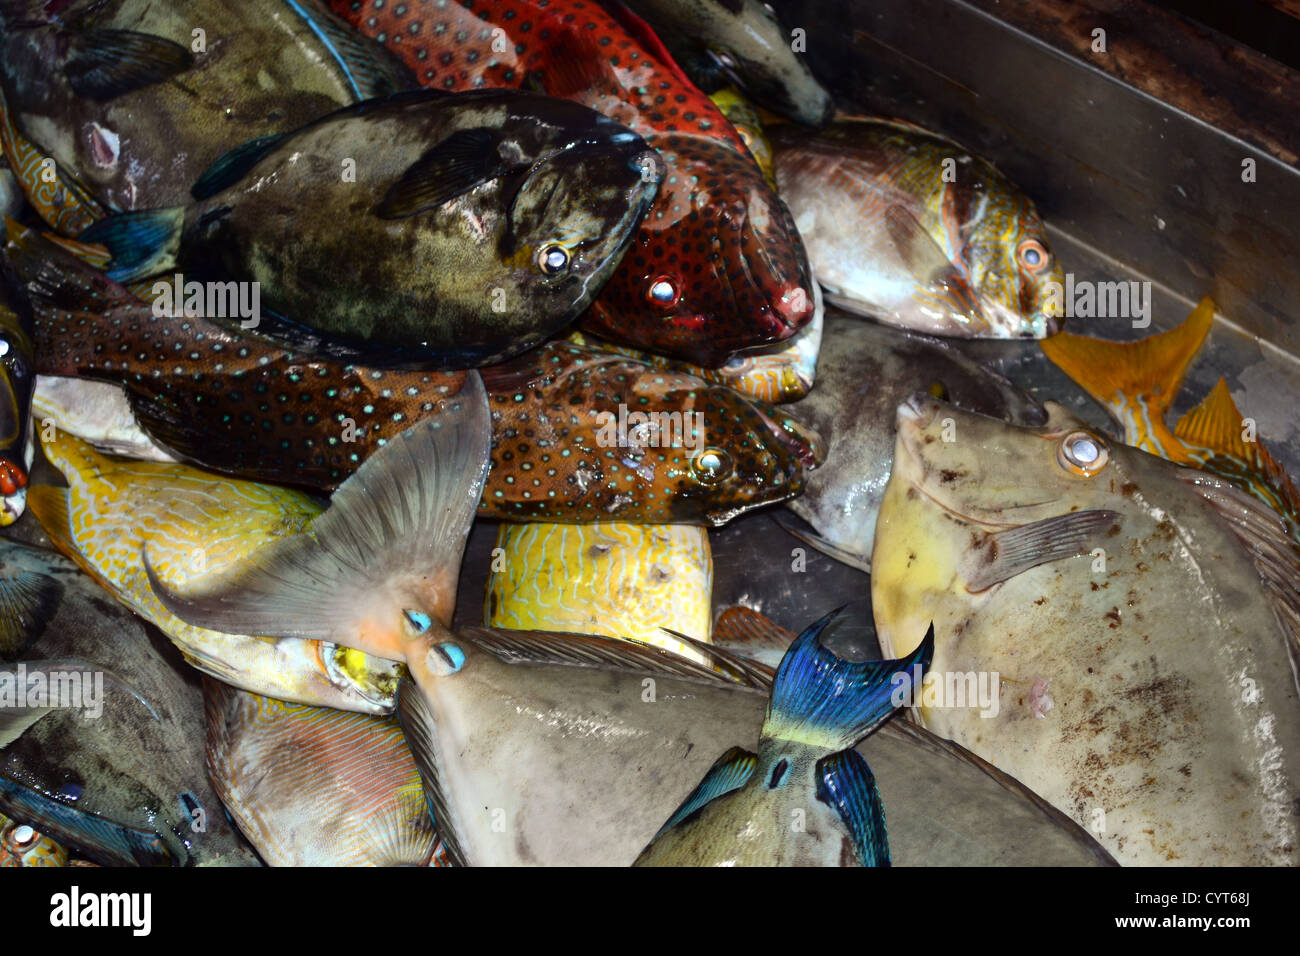 A variety of reef fish, mainly surgeonfish being sold at the local market, Pohnpei, Federated States of Micronesia - Stock Image